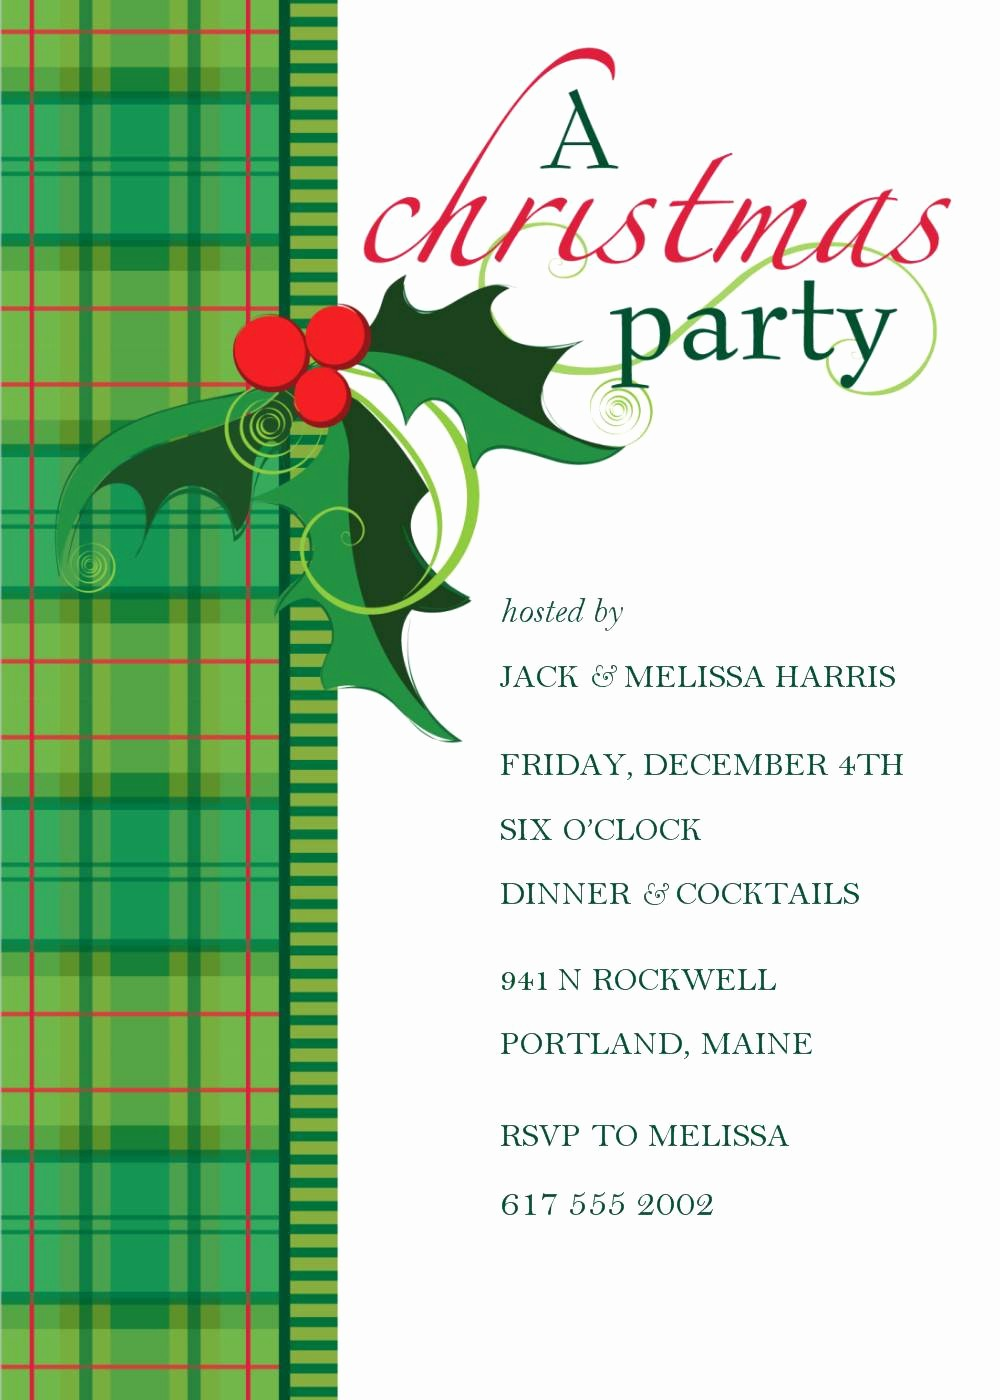 Christmas Party Invitation Free Template Inspirational Christmas Party Invitation Template